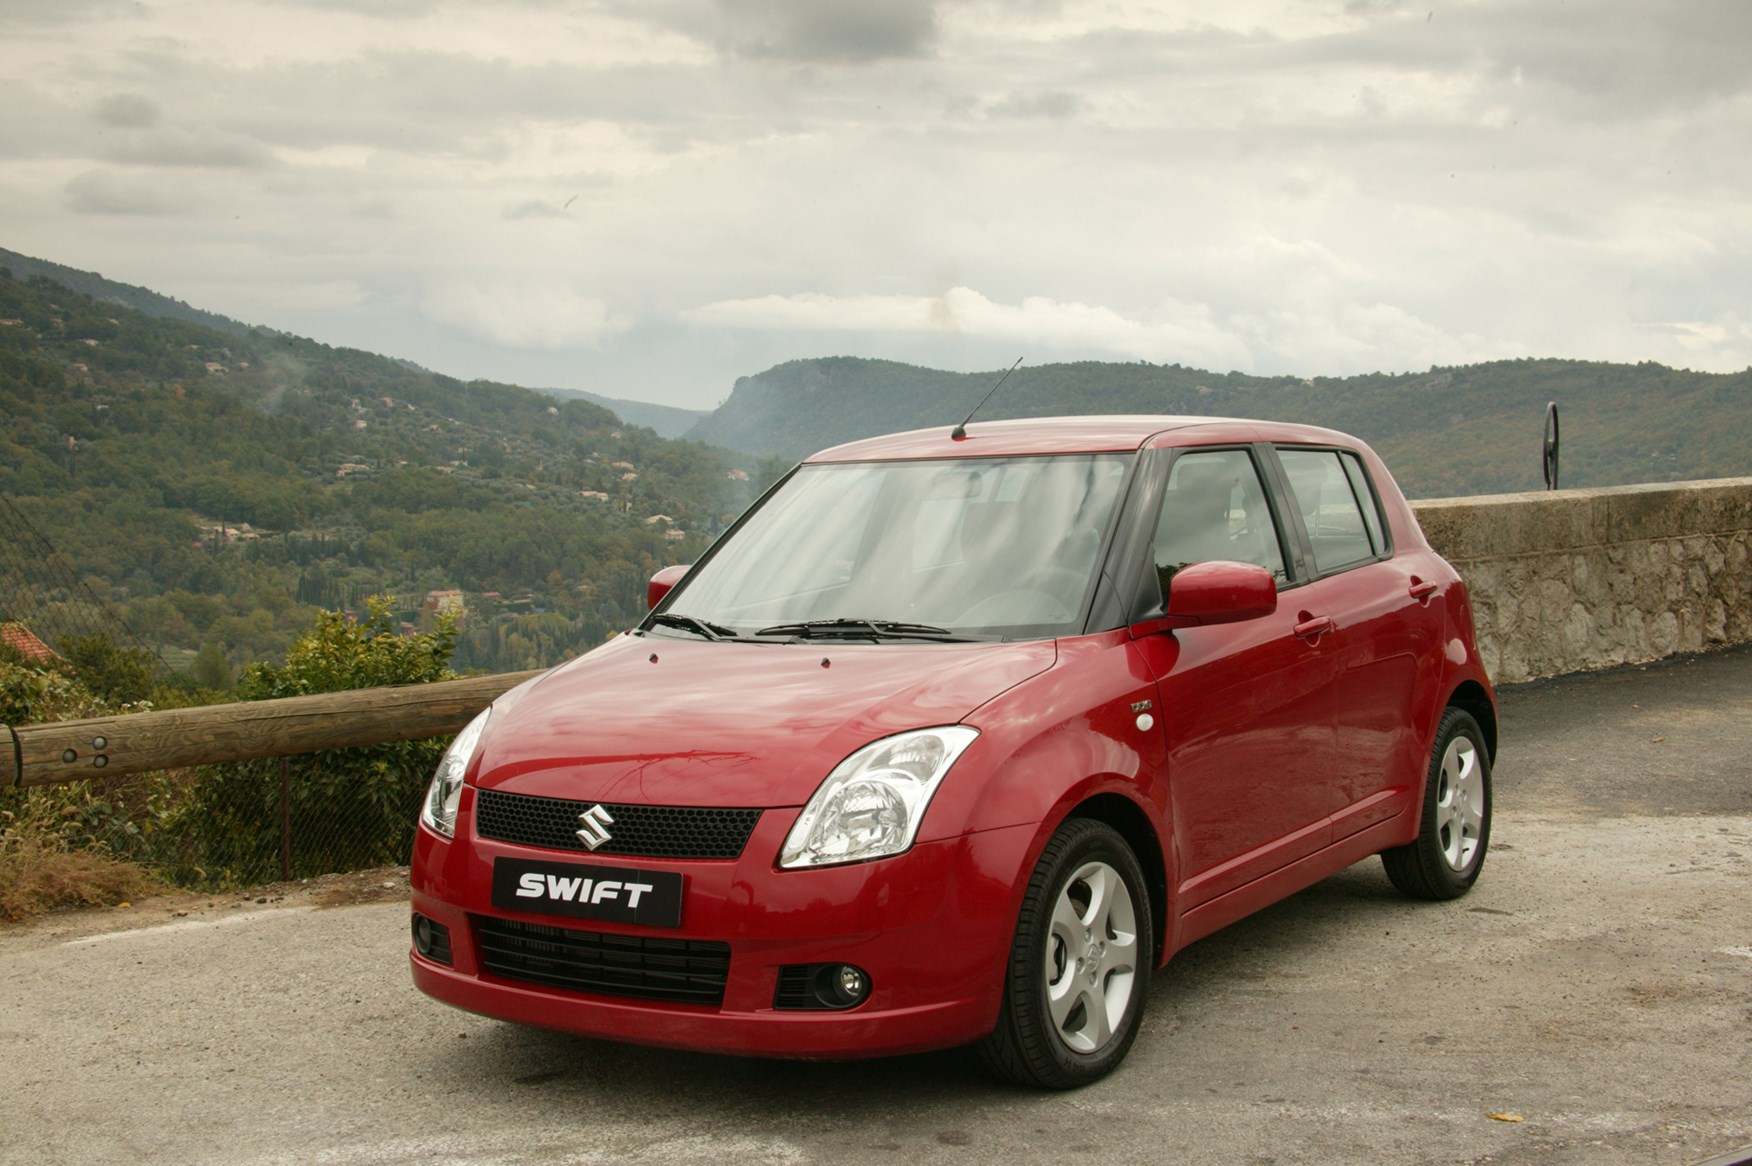 suzuki swift hatchback review 2005 2011 parkers. Black Bedroom Furniture Sets. Home Design Ideas